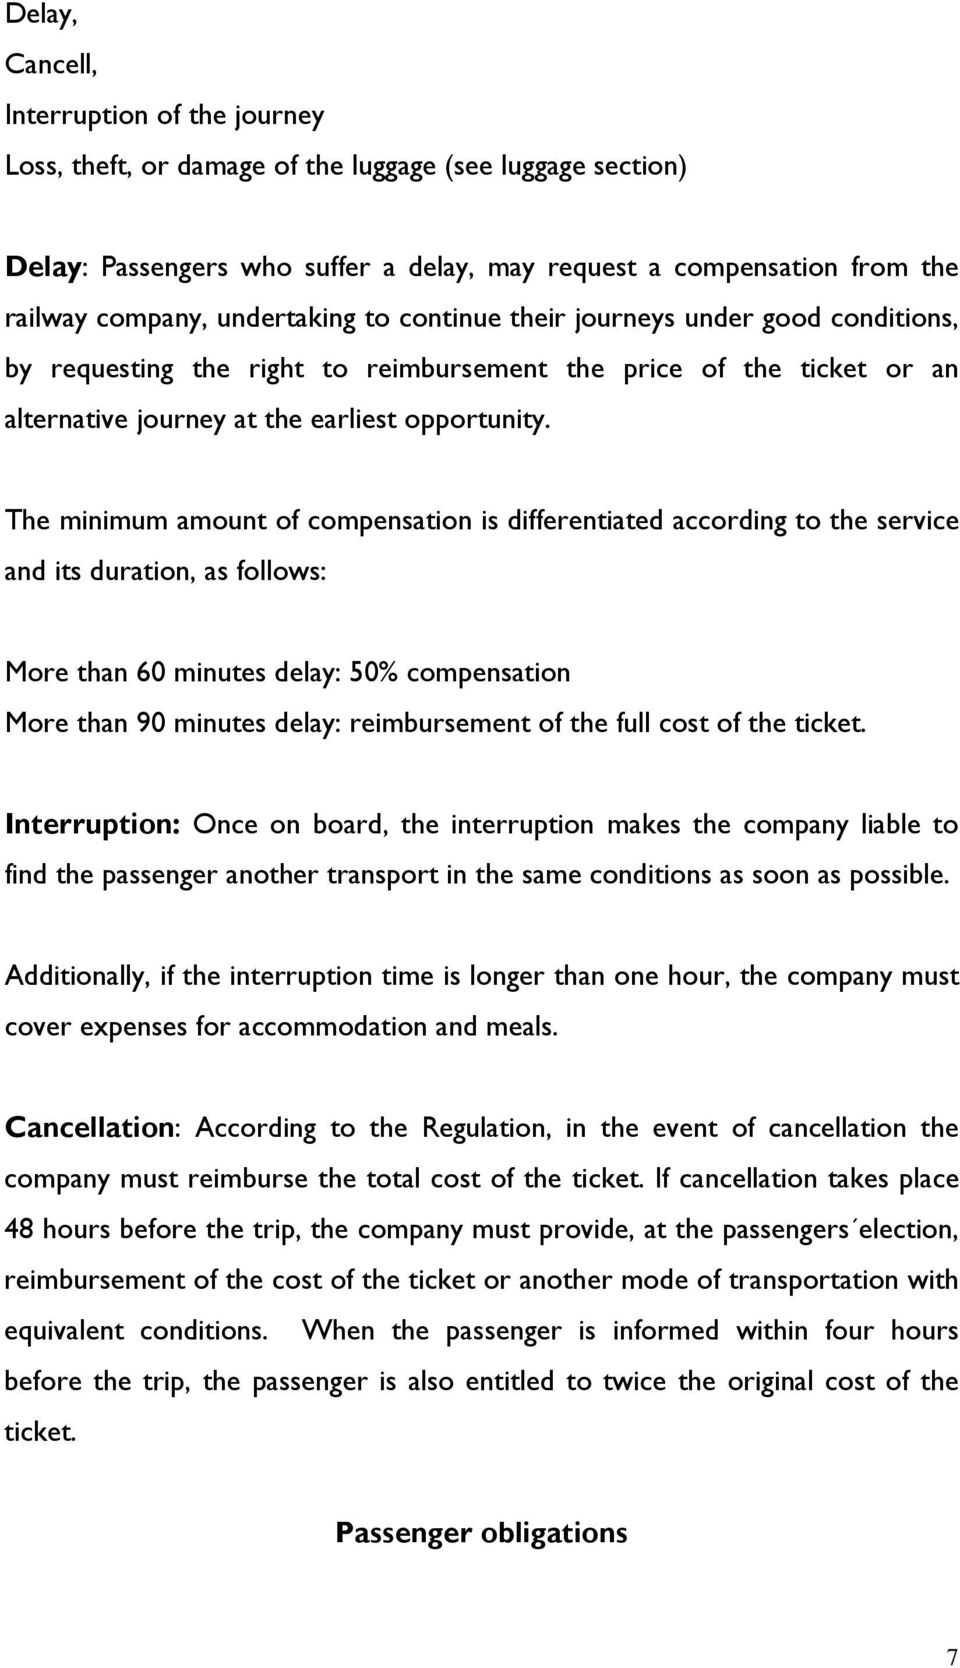 The minimum amount of compensation is differentiated according to the service and its duration, as follows: More than 60 minutes delay: 50% compensation More than 90 minutes delay: reimbursement of